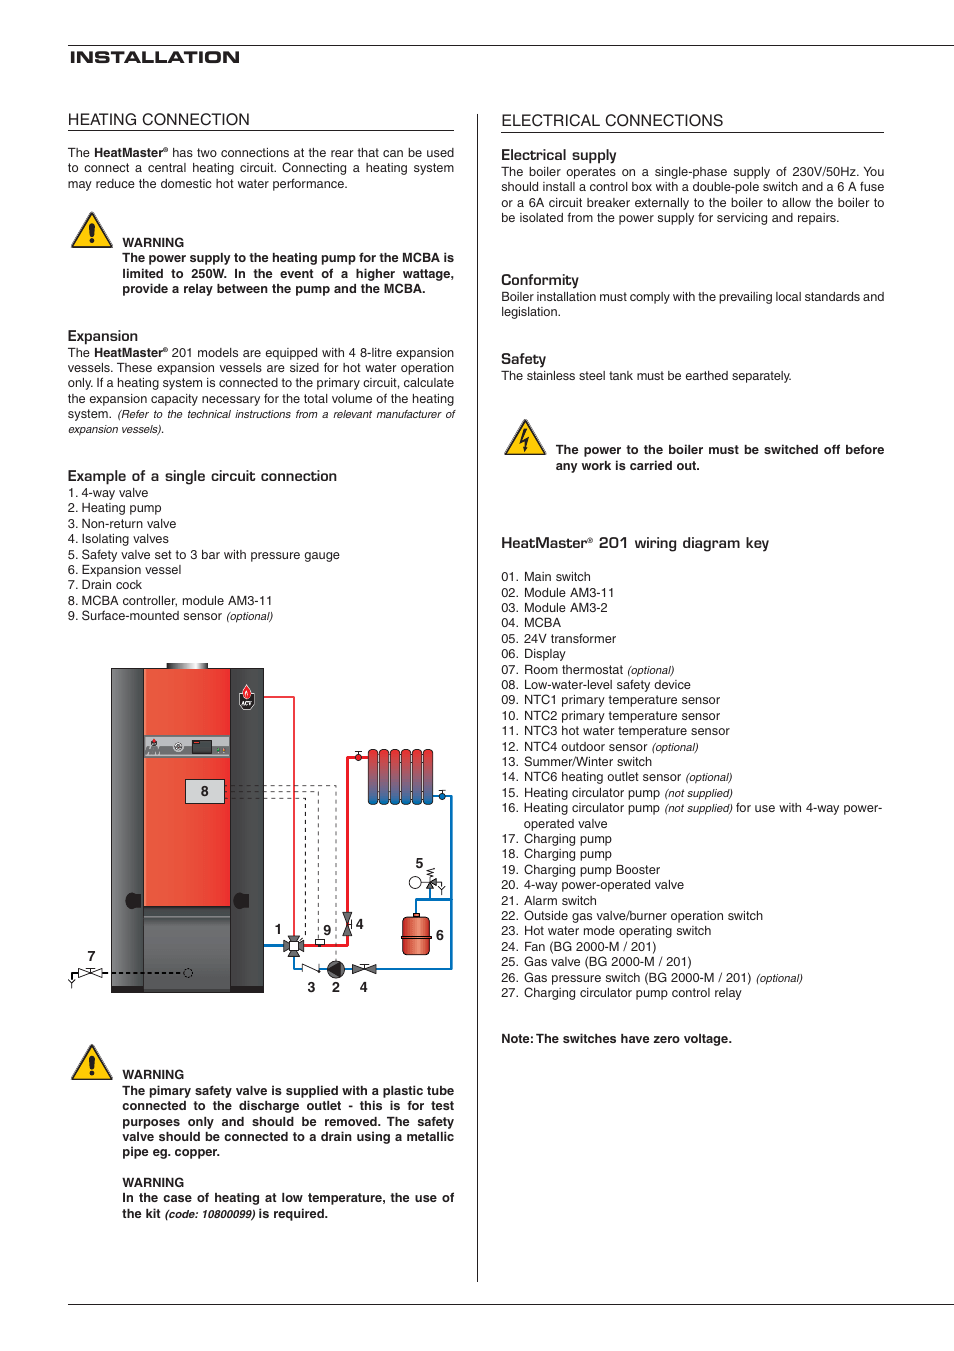 hight resolution of electrical connections installation heating connection heatmaster 201 user manual page 12 28